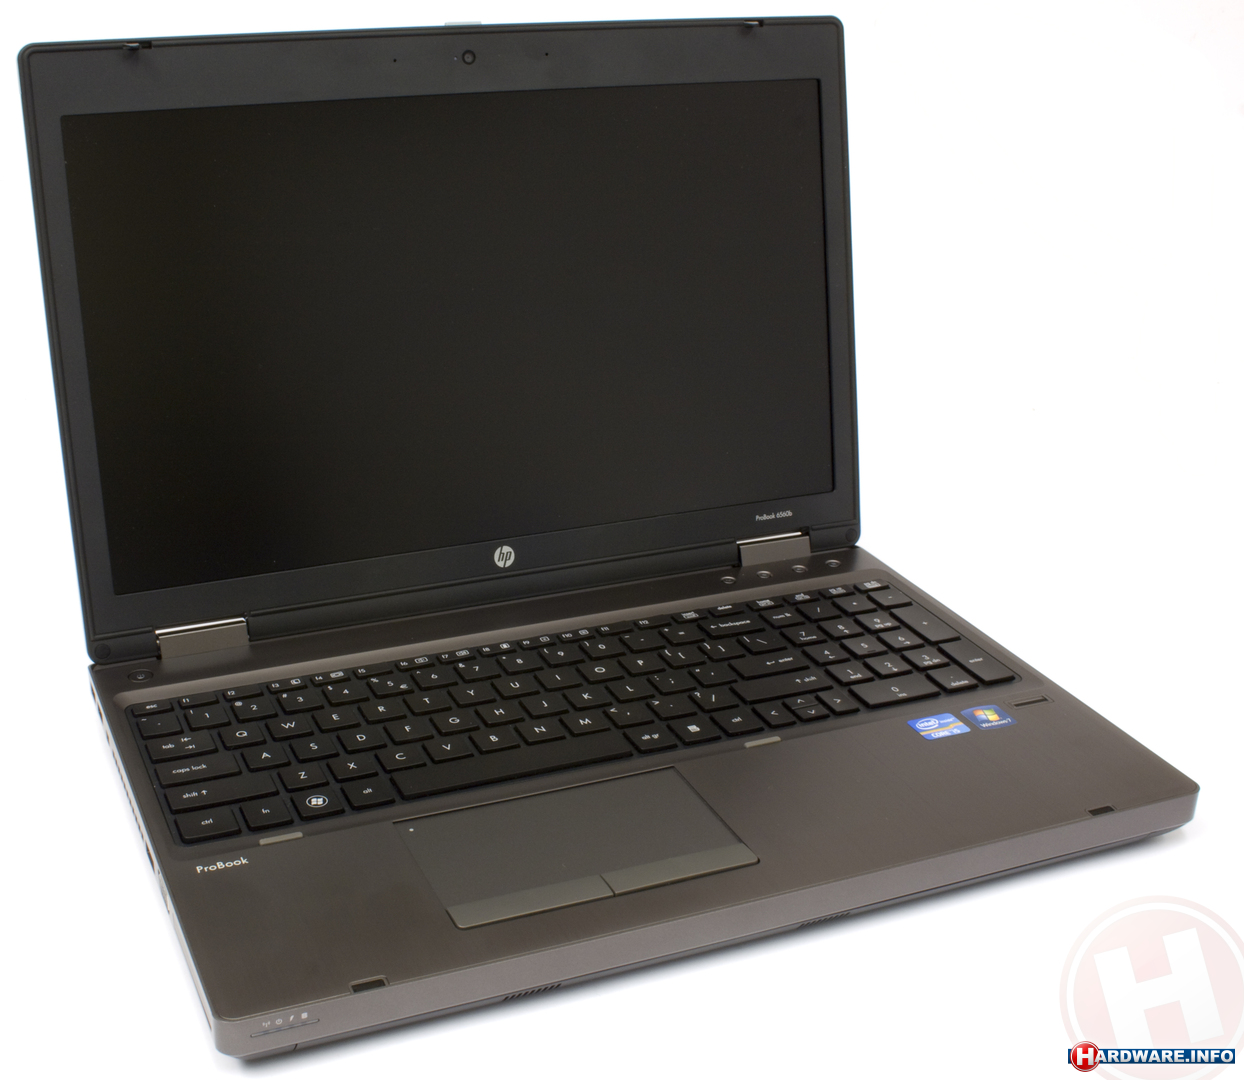 hp 4650 how to delete contact